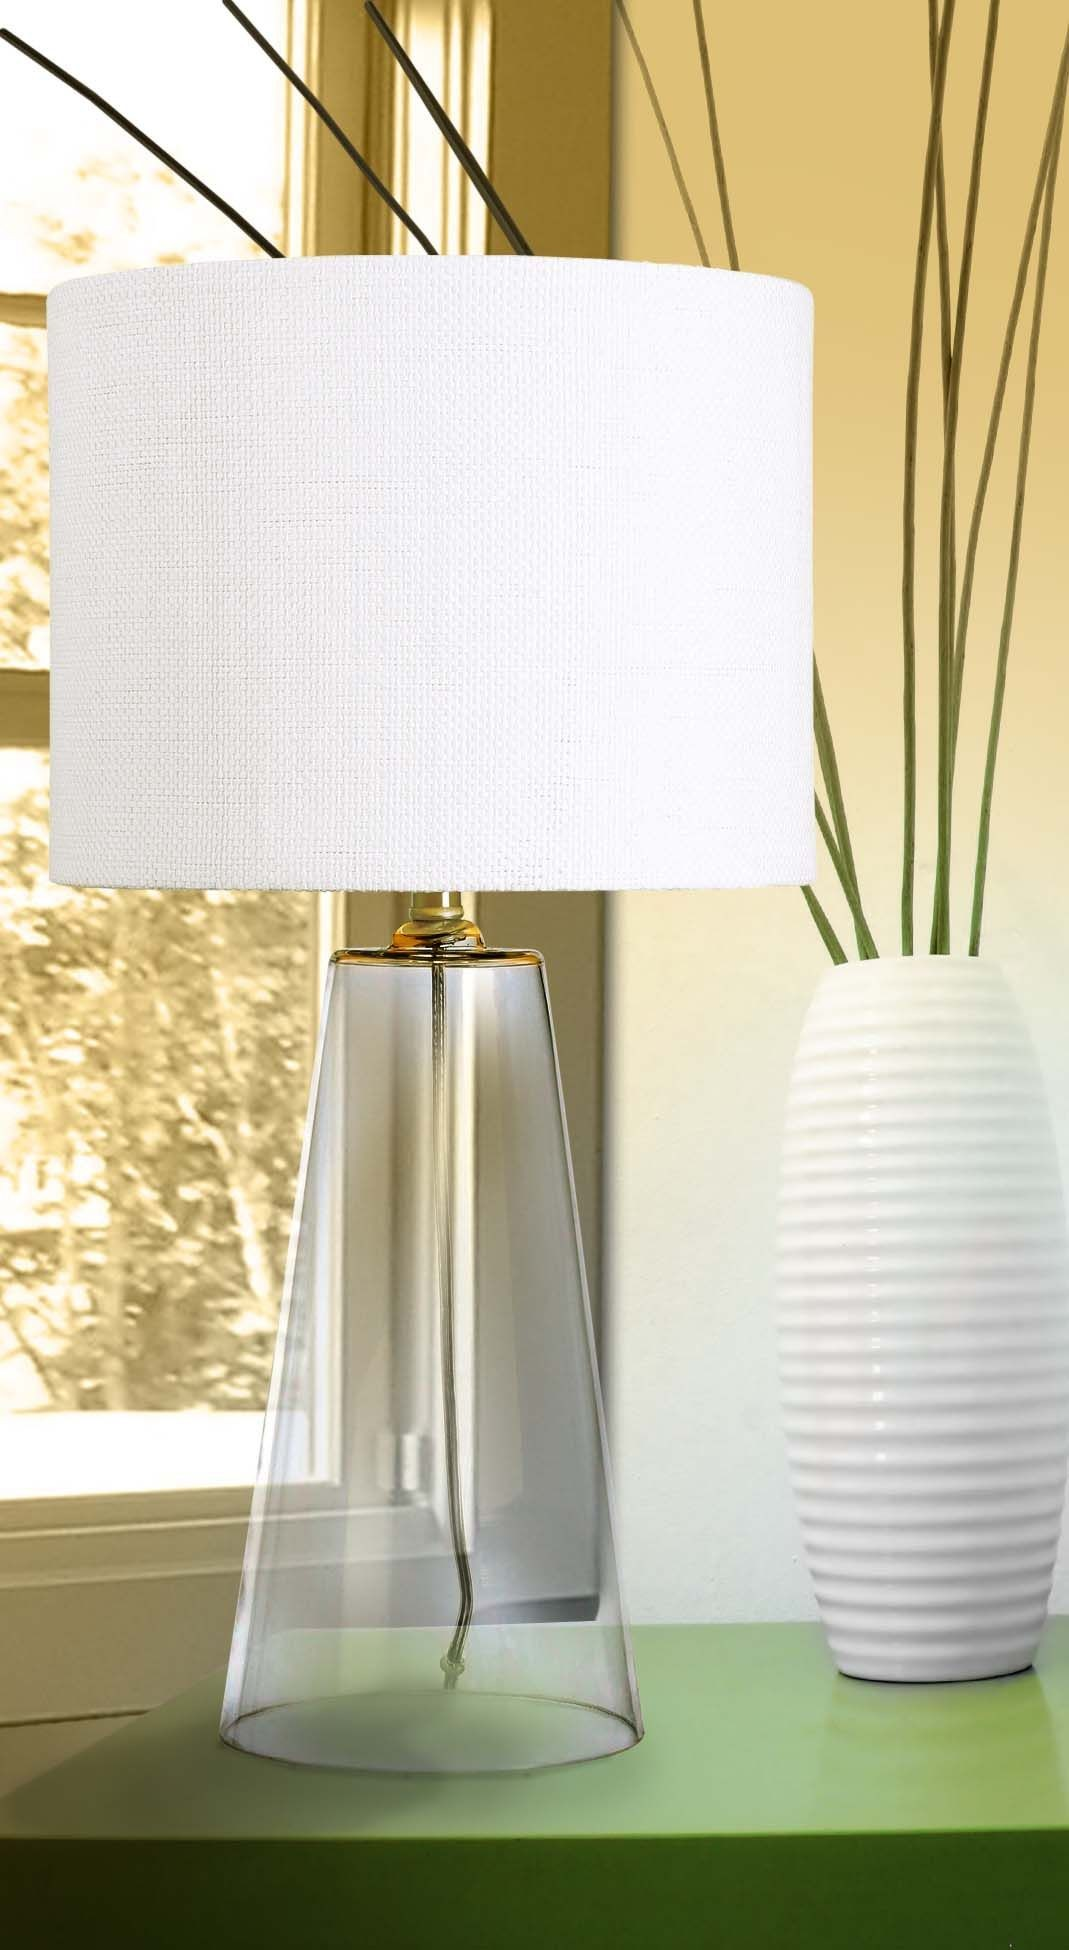 Boda Table Lamp from Kenroy CL